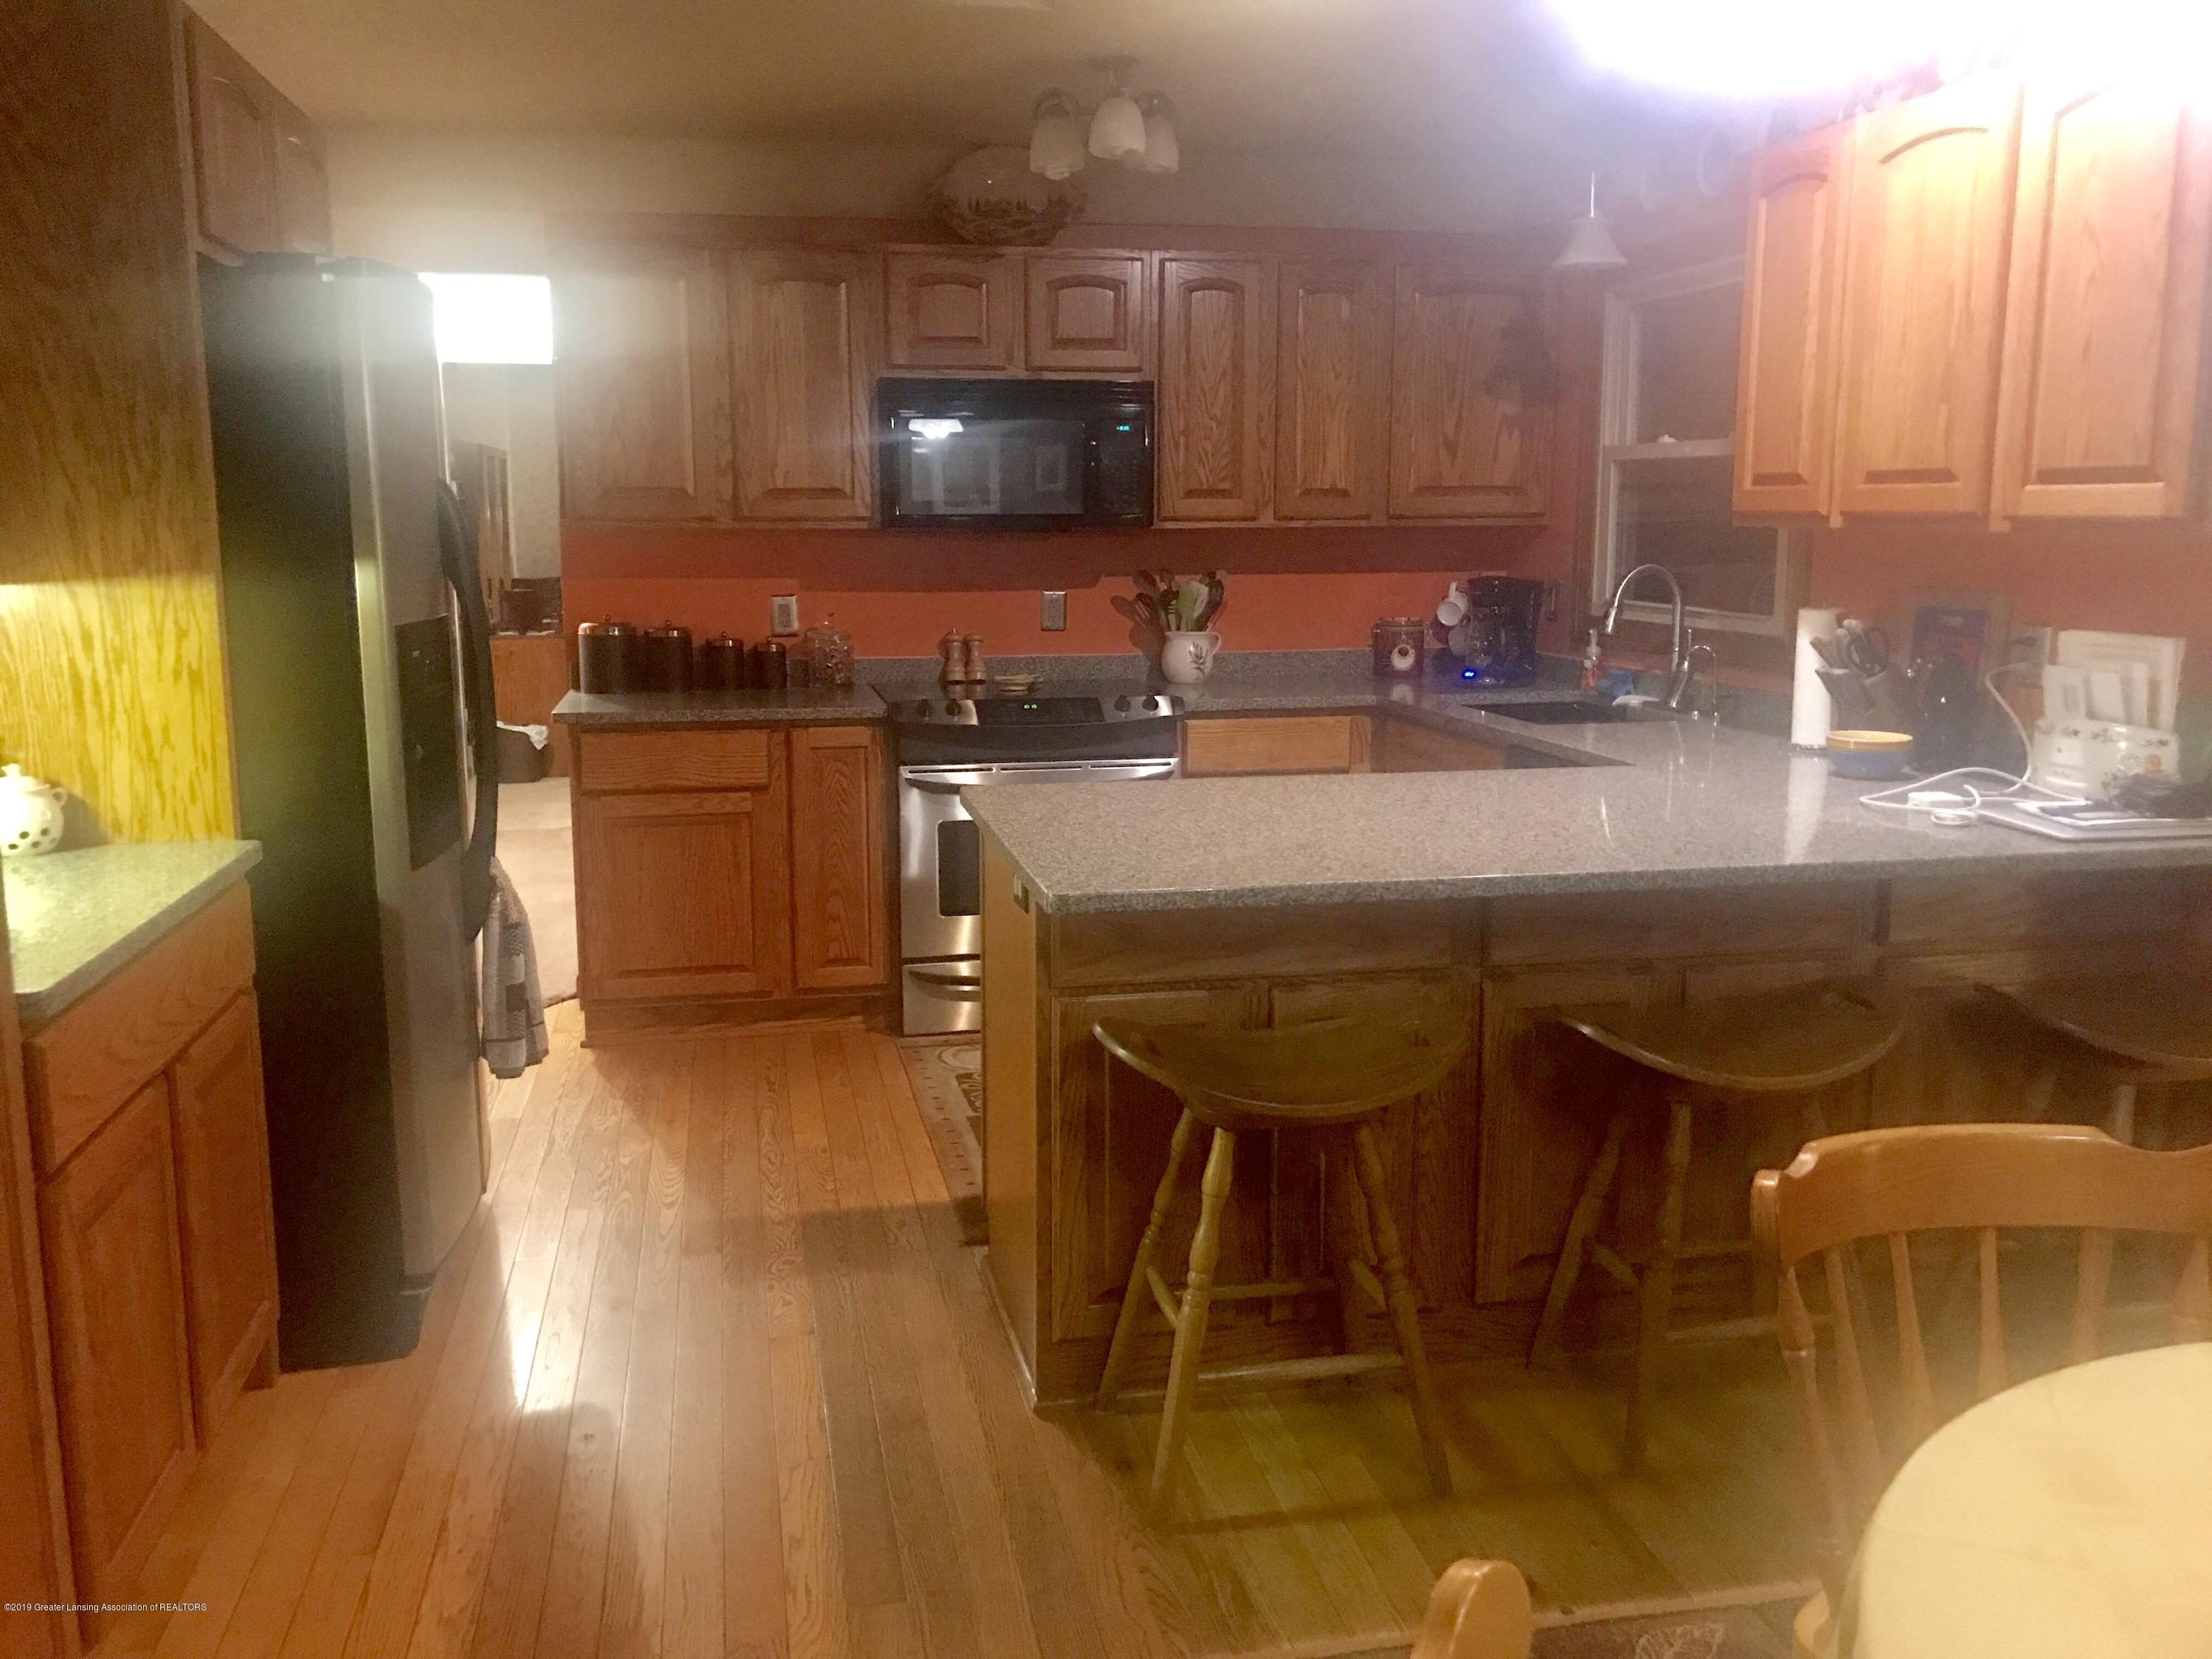 805 E Dill Dr - Re-polished & Sealed Hardwood Flooring - 64